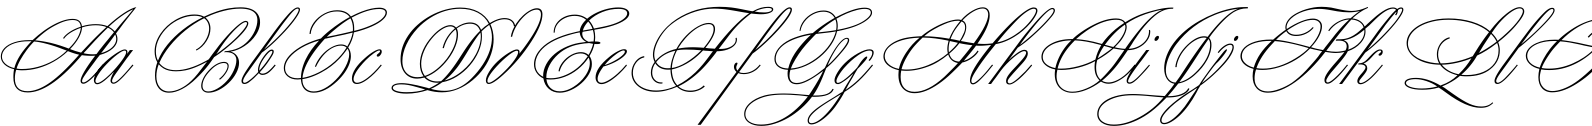 Young Baroque LET Font